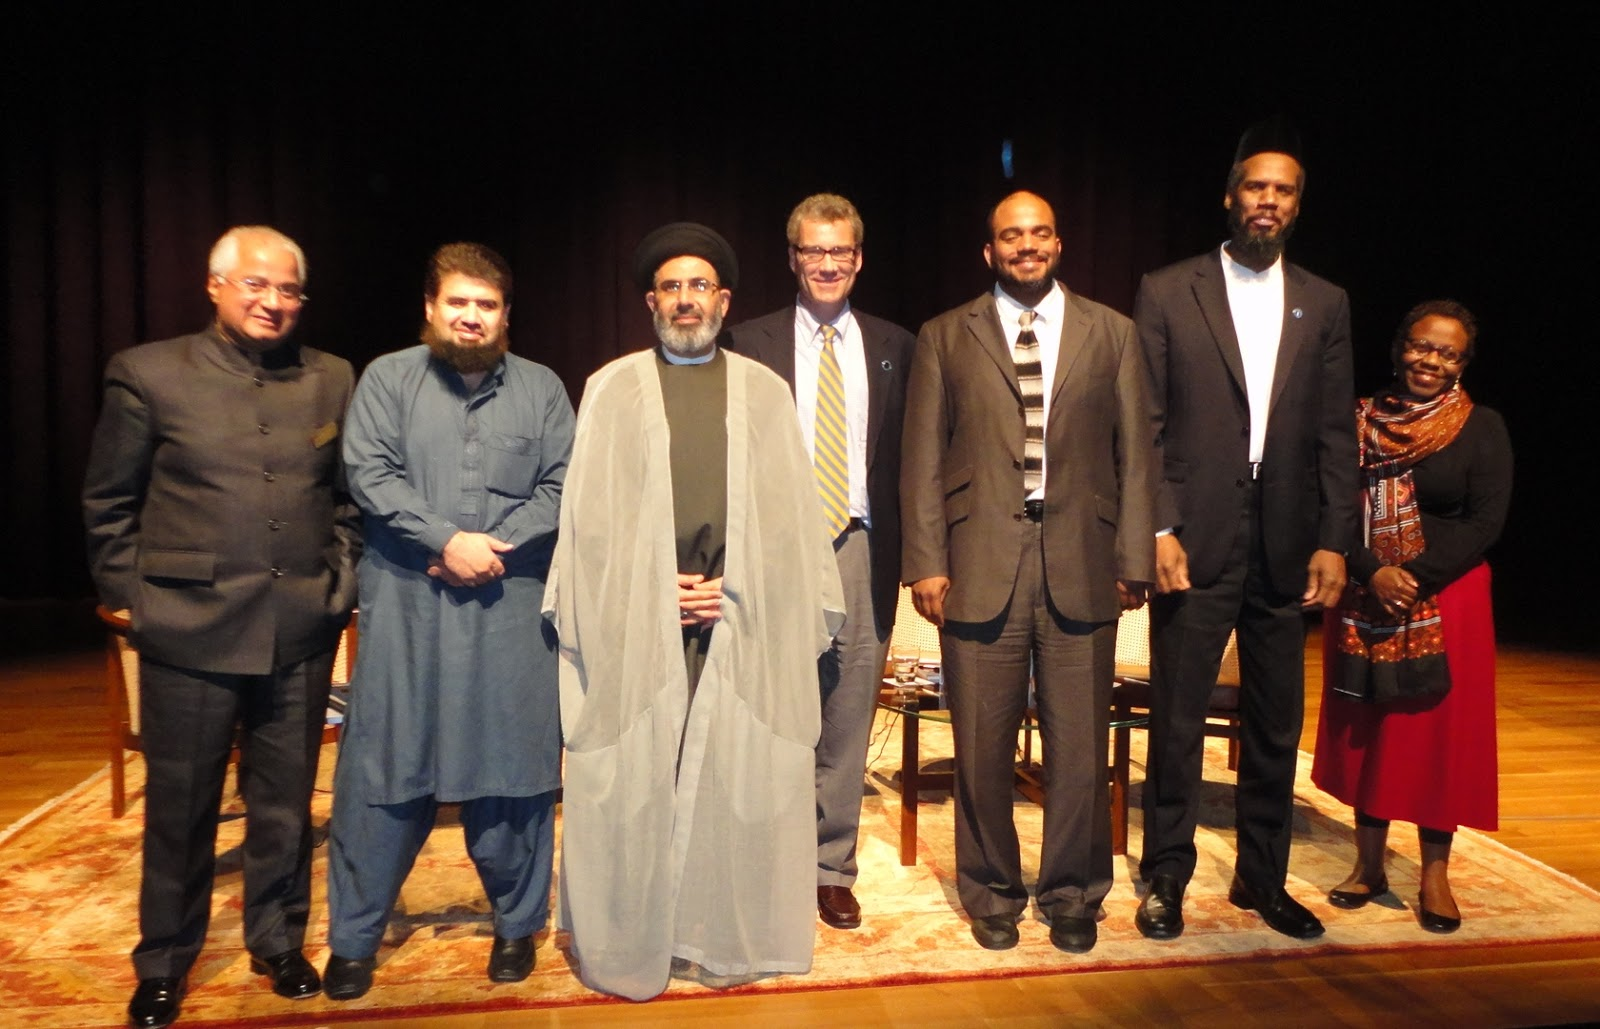 smith center muslim Islam and christian-muslim relations the macdonald center for the study of islam and christian-muslim relations is the country's oldest center for such study, opening in 1973.